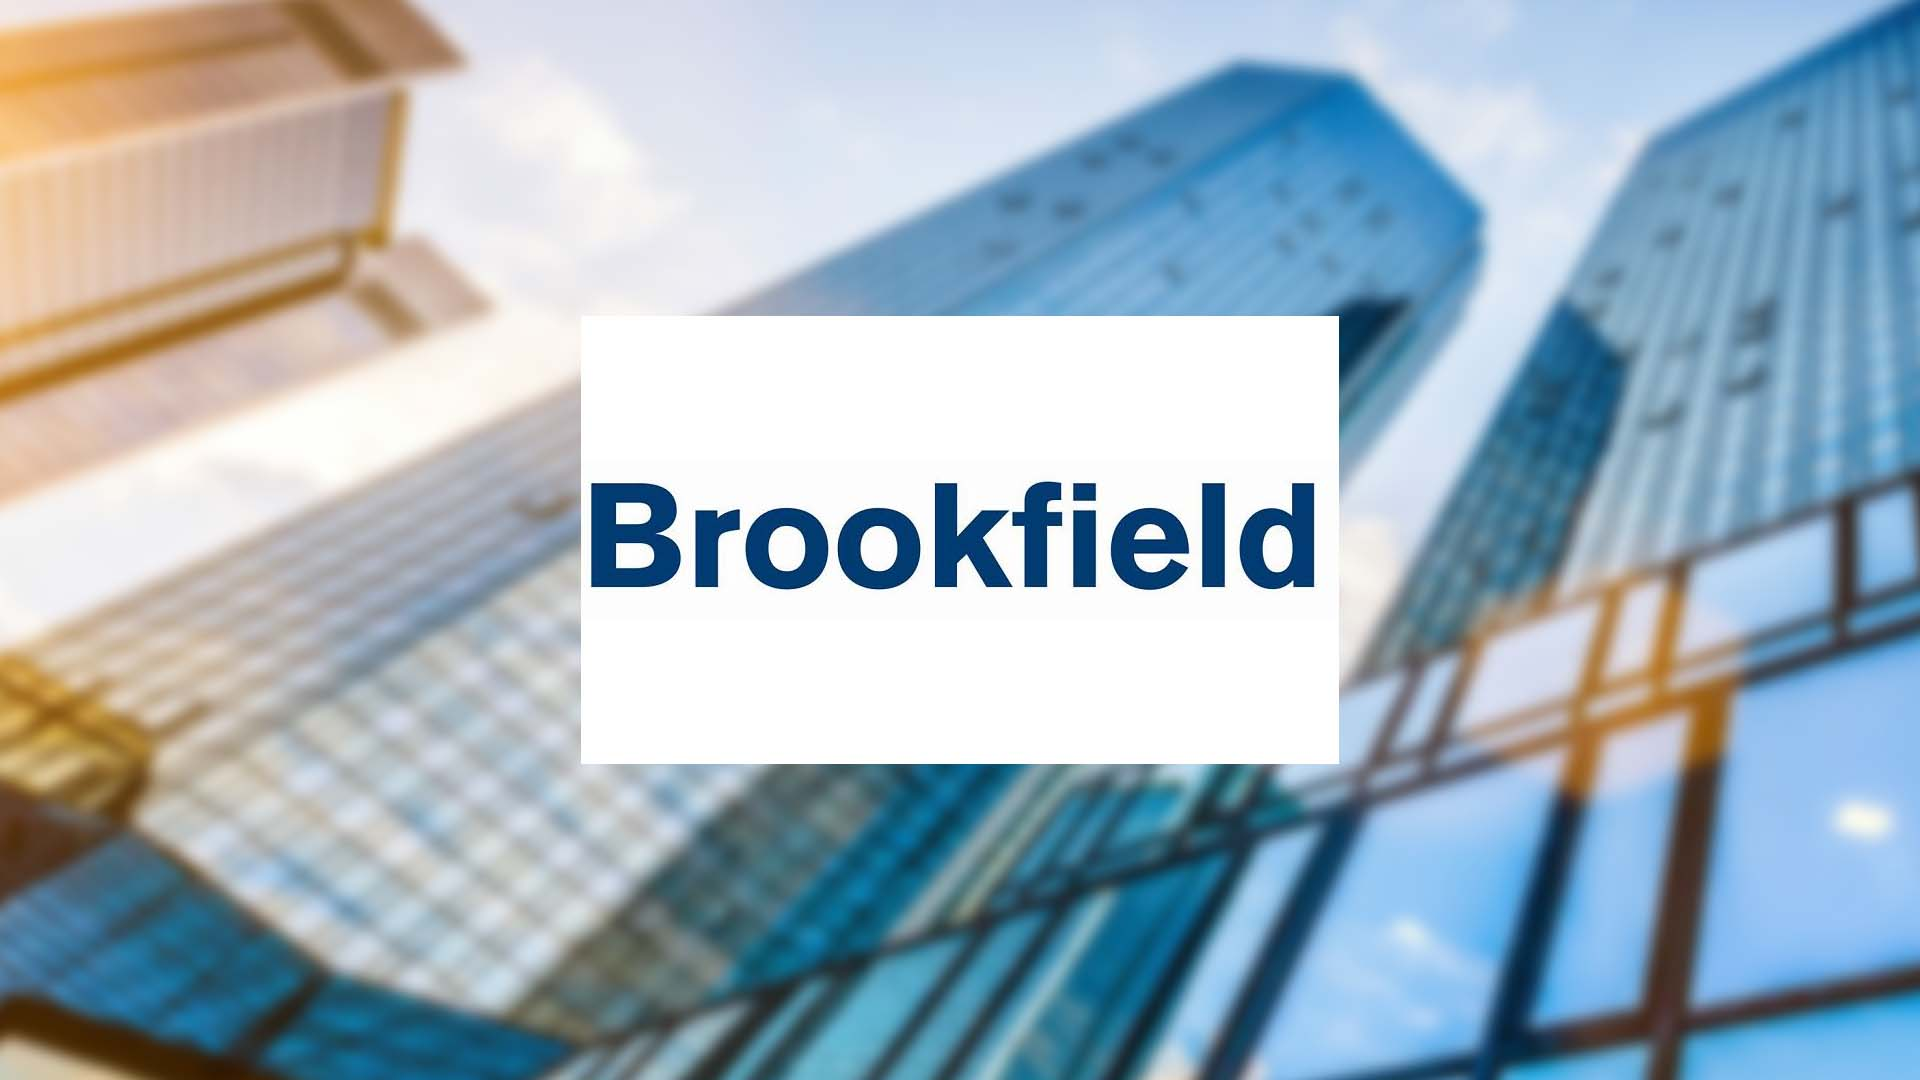 Brookfield To Procure RCom's Realty Assets Worth Rs. 800 Cr.